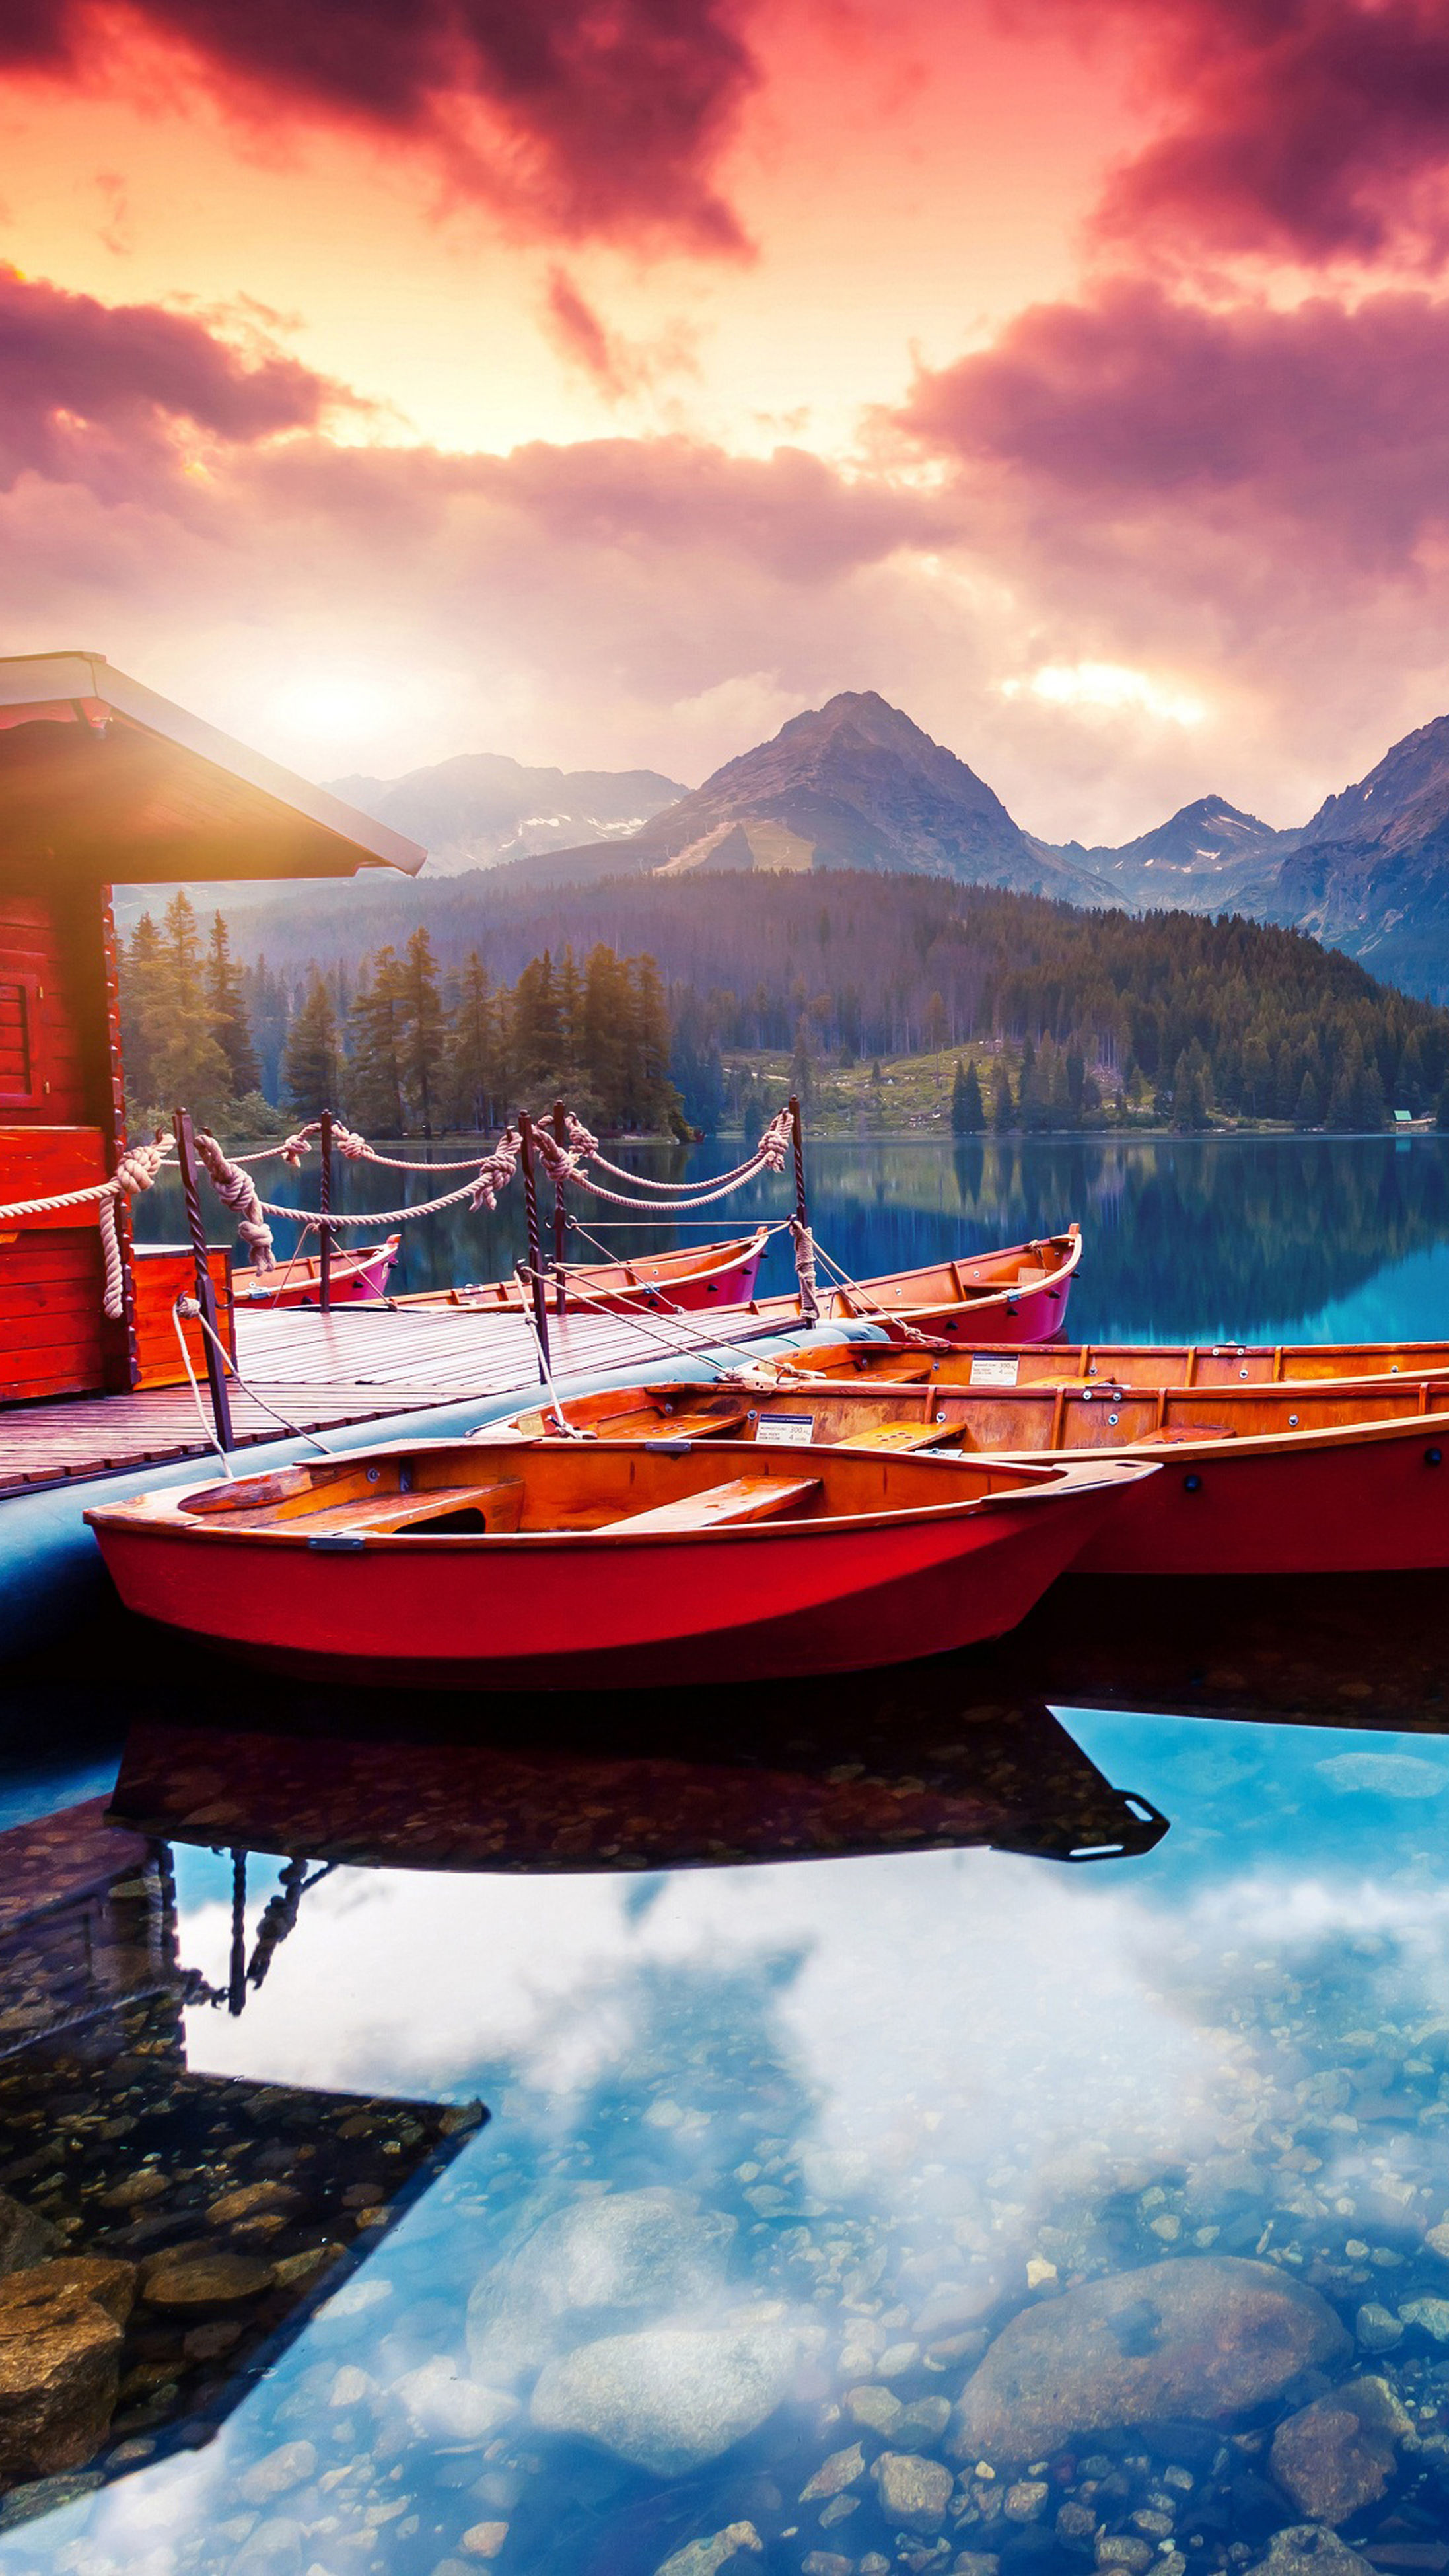 nautical vessel, mode of transport, boat, transportation, water, moored, mountain, sunset, lake, reflection, mountain range, tranquility, tranquil scene, sky, scenics, cloud - sky, cloud, calm, waterfront, nature, standing water, beauty in nature, non-urban scene, dock, sea, harbor, no people